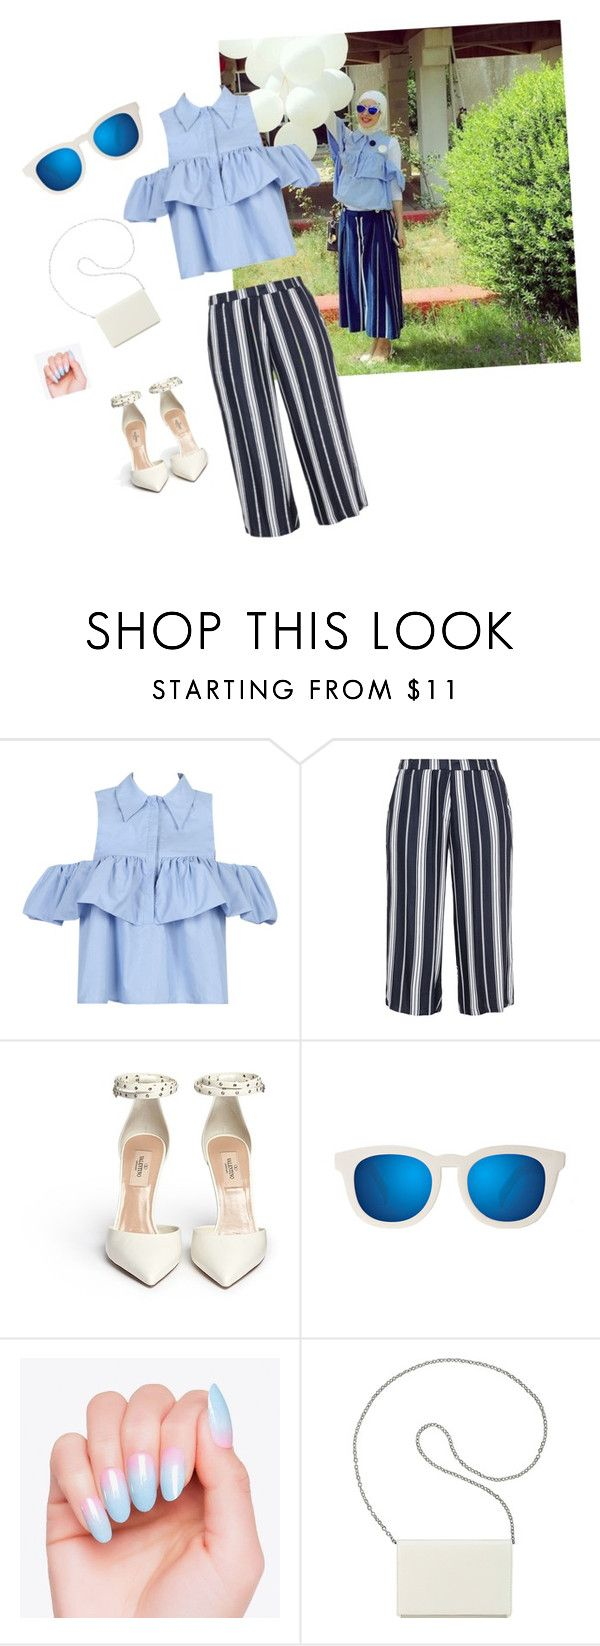 """""""Untitled #12"""" by sabaalagha ❤ liked on Polyvore featuring WithChic, Zhenzi, Quay and Nine West"""